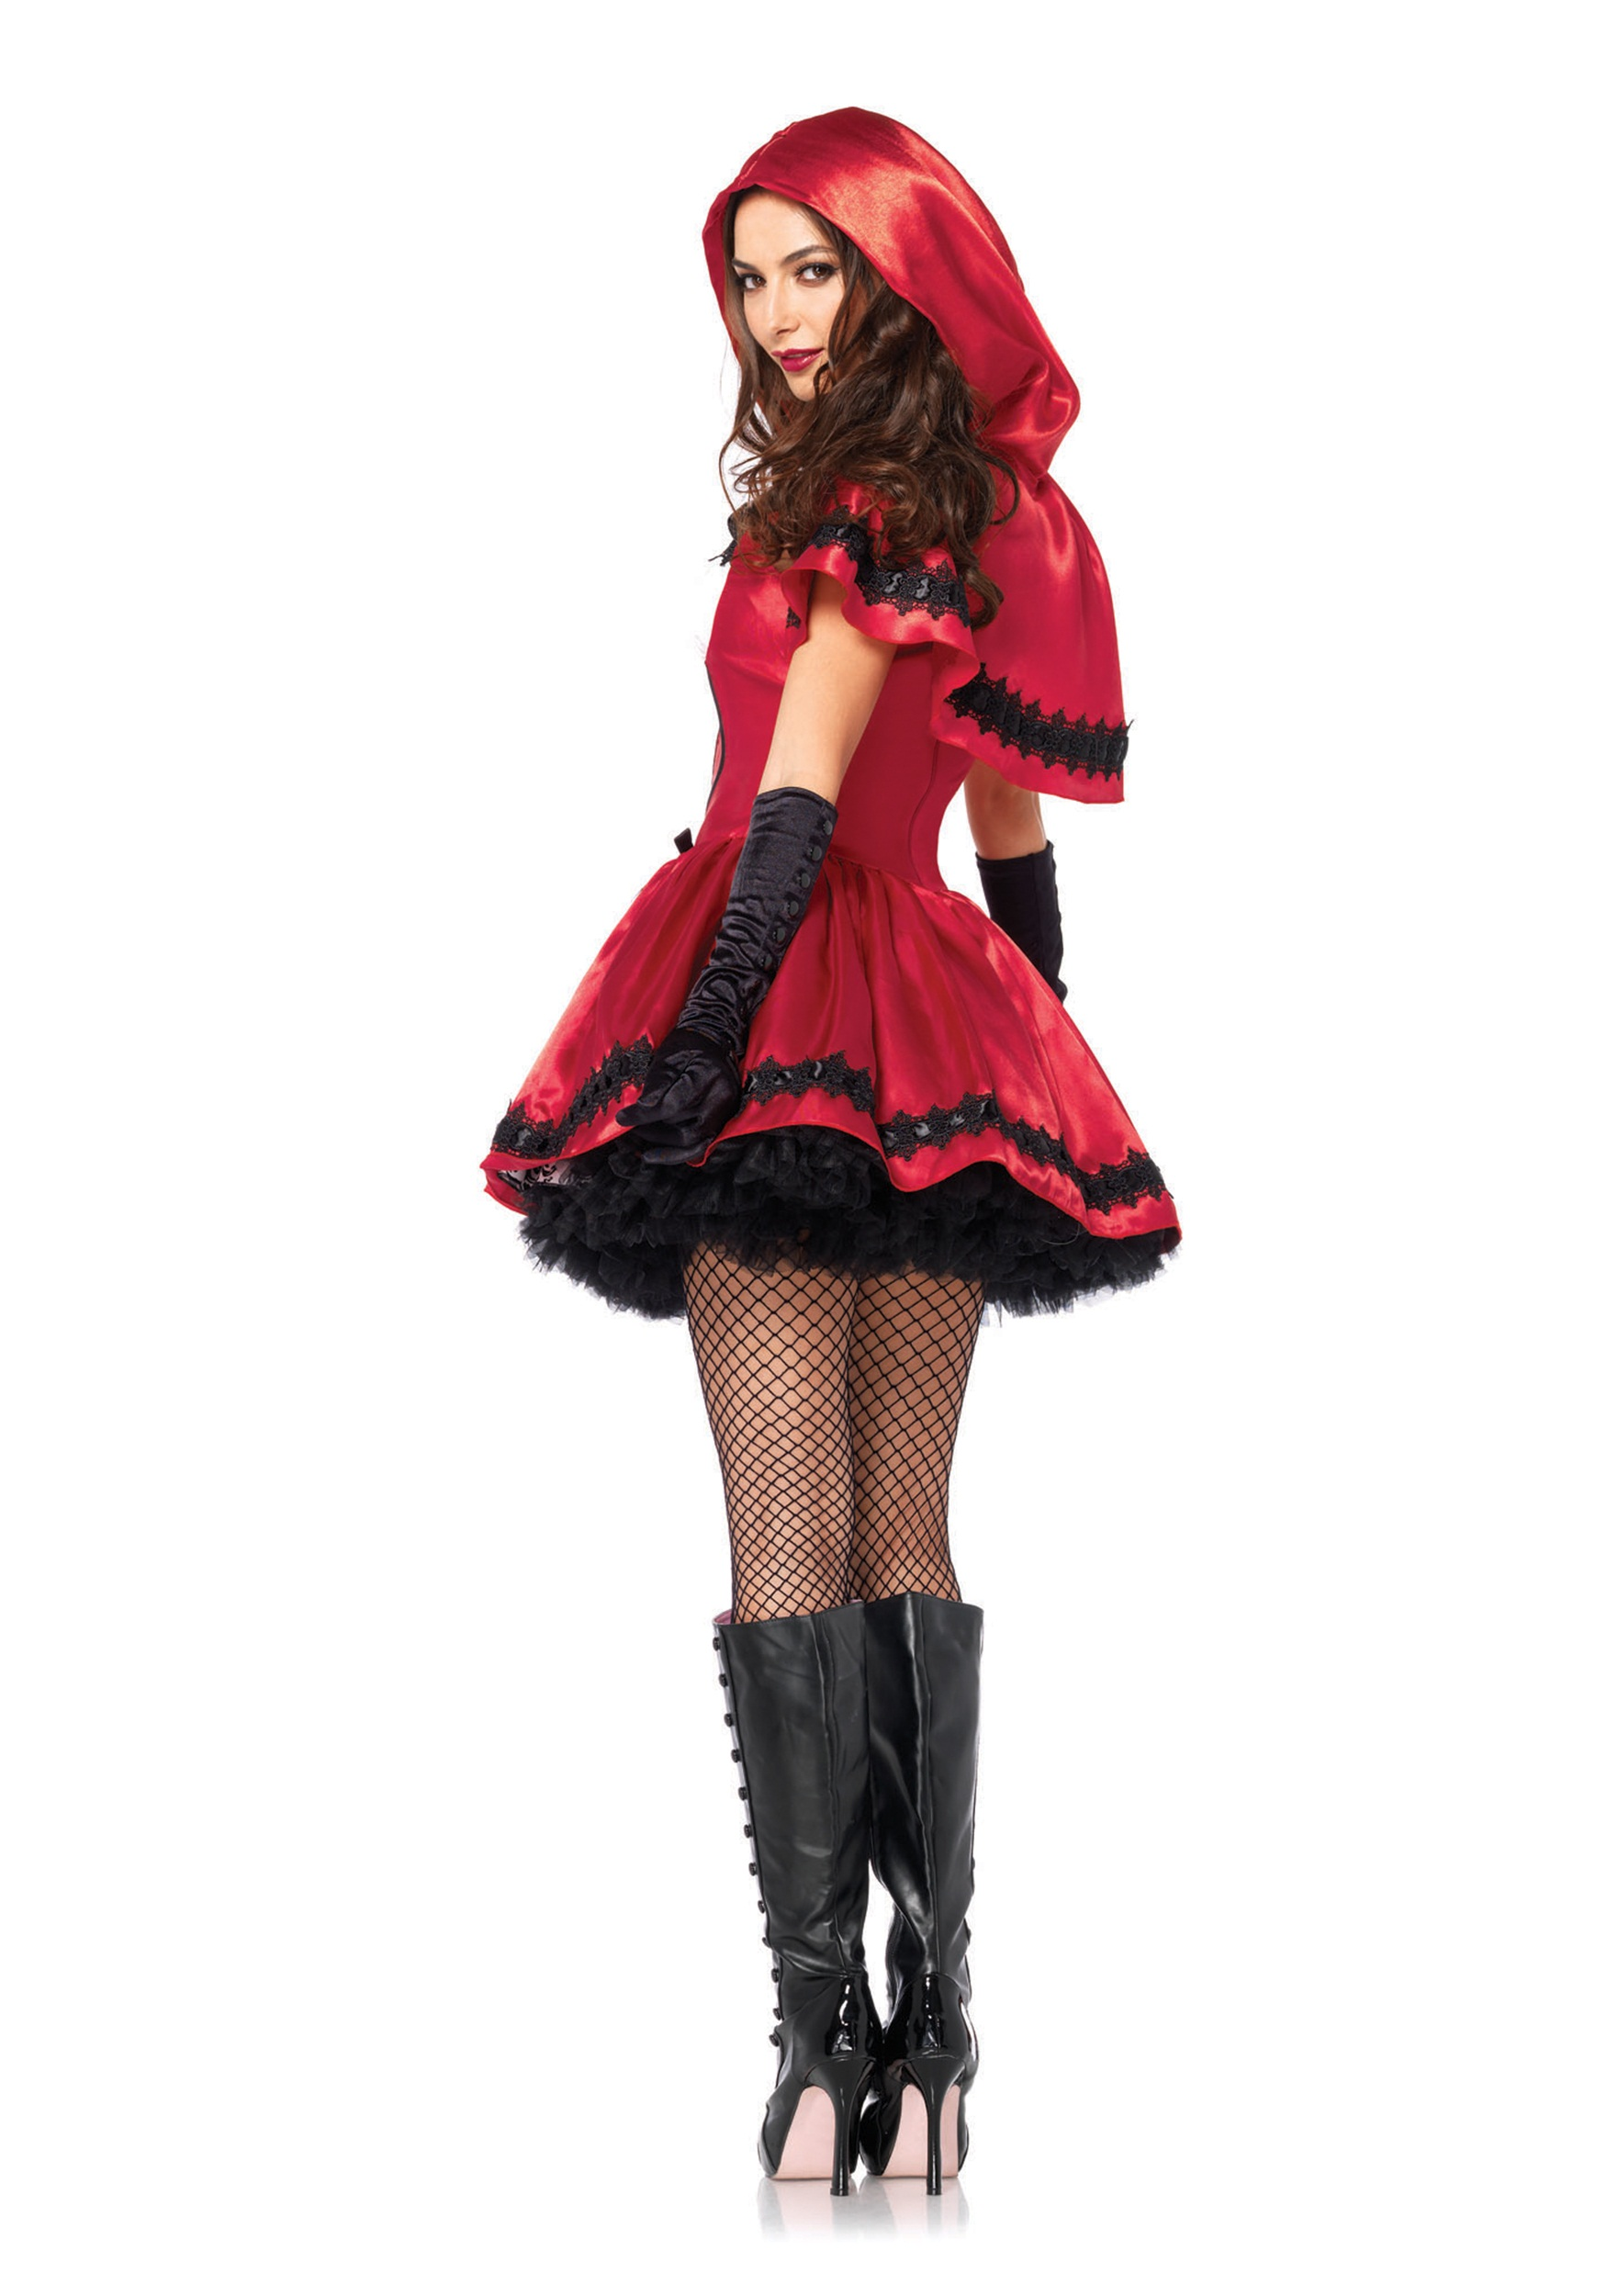 Gothic Home Decorations Gothic Red Riding Hood Adult Costume